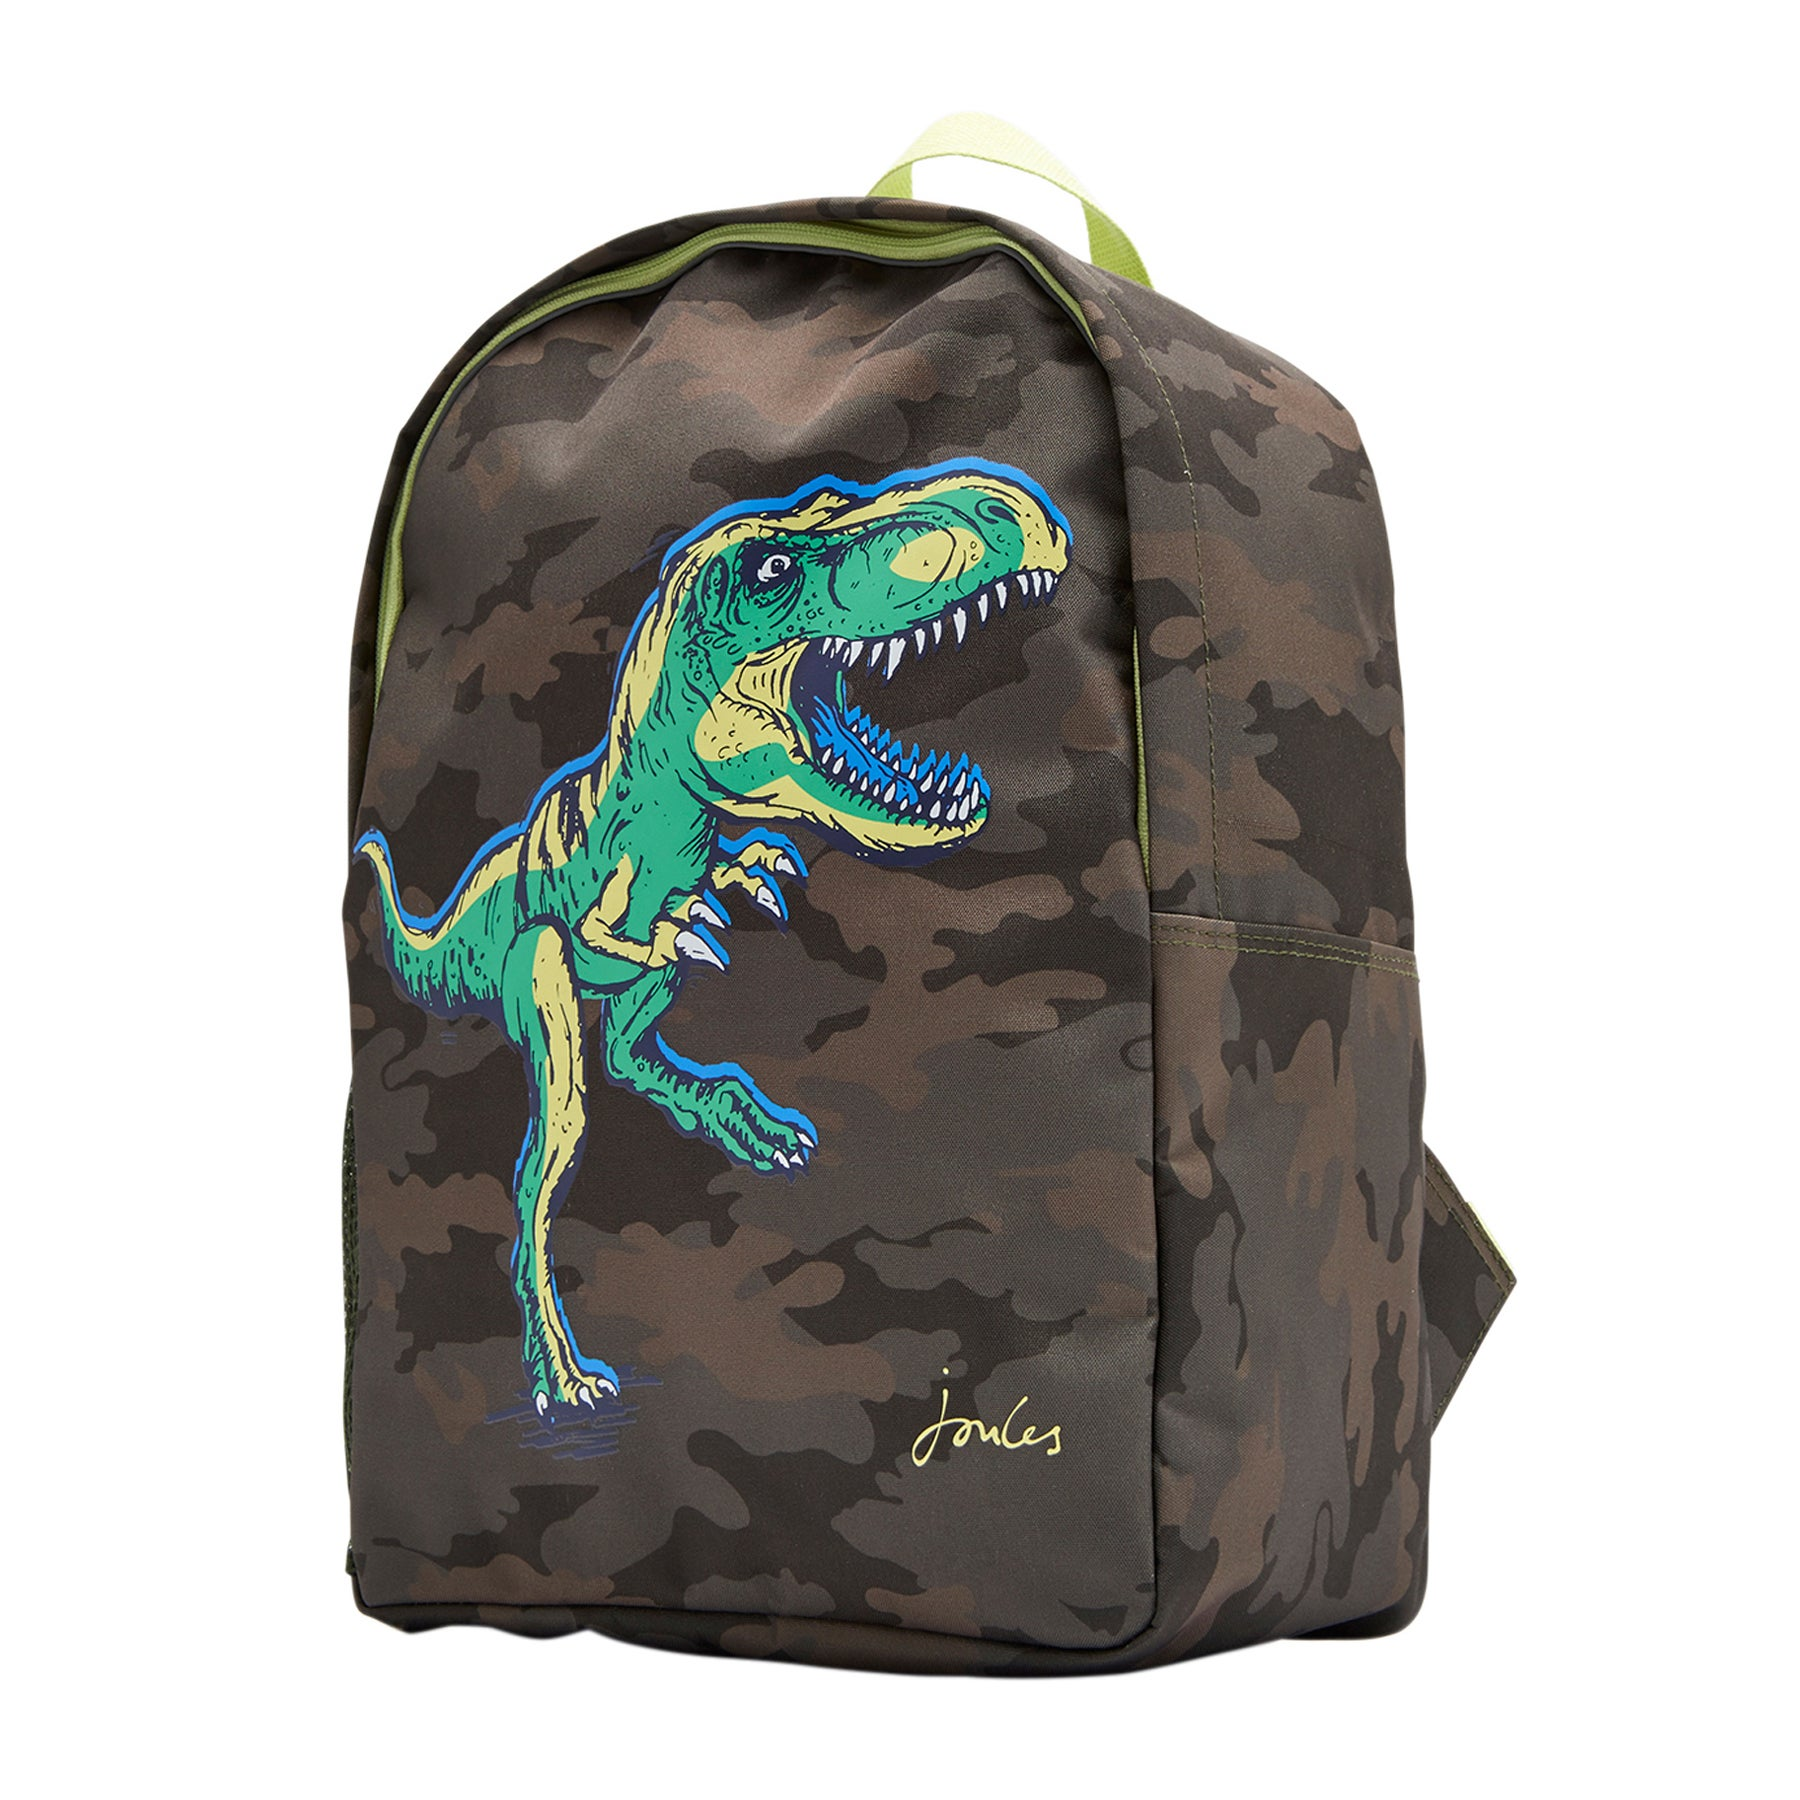 Joules Patchback Rucksack - Green Camo Dino